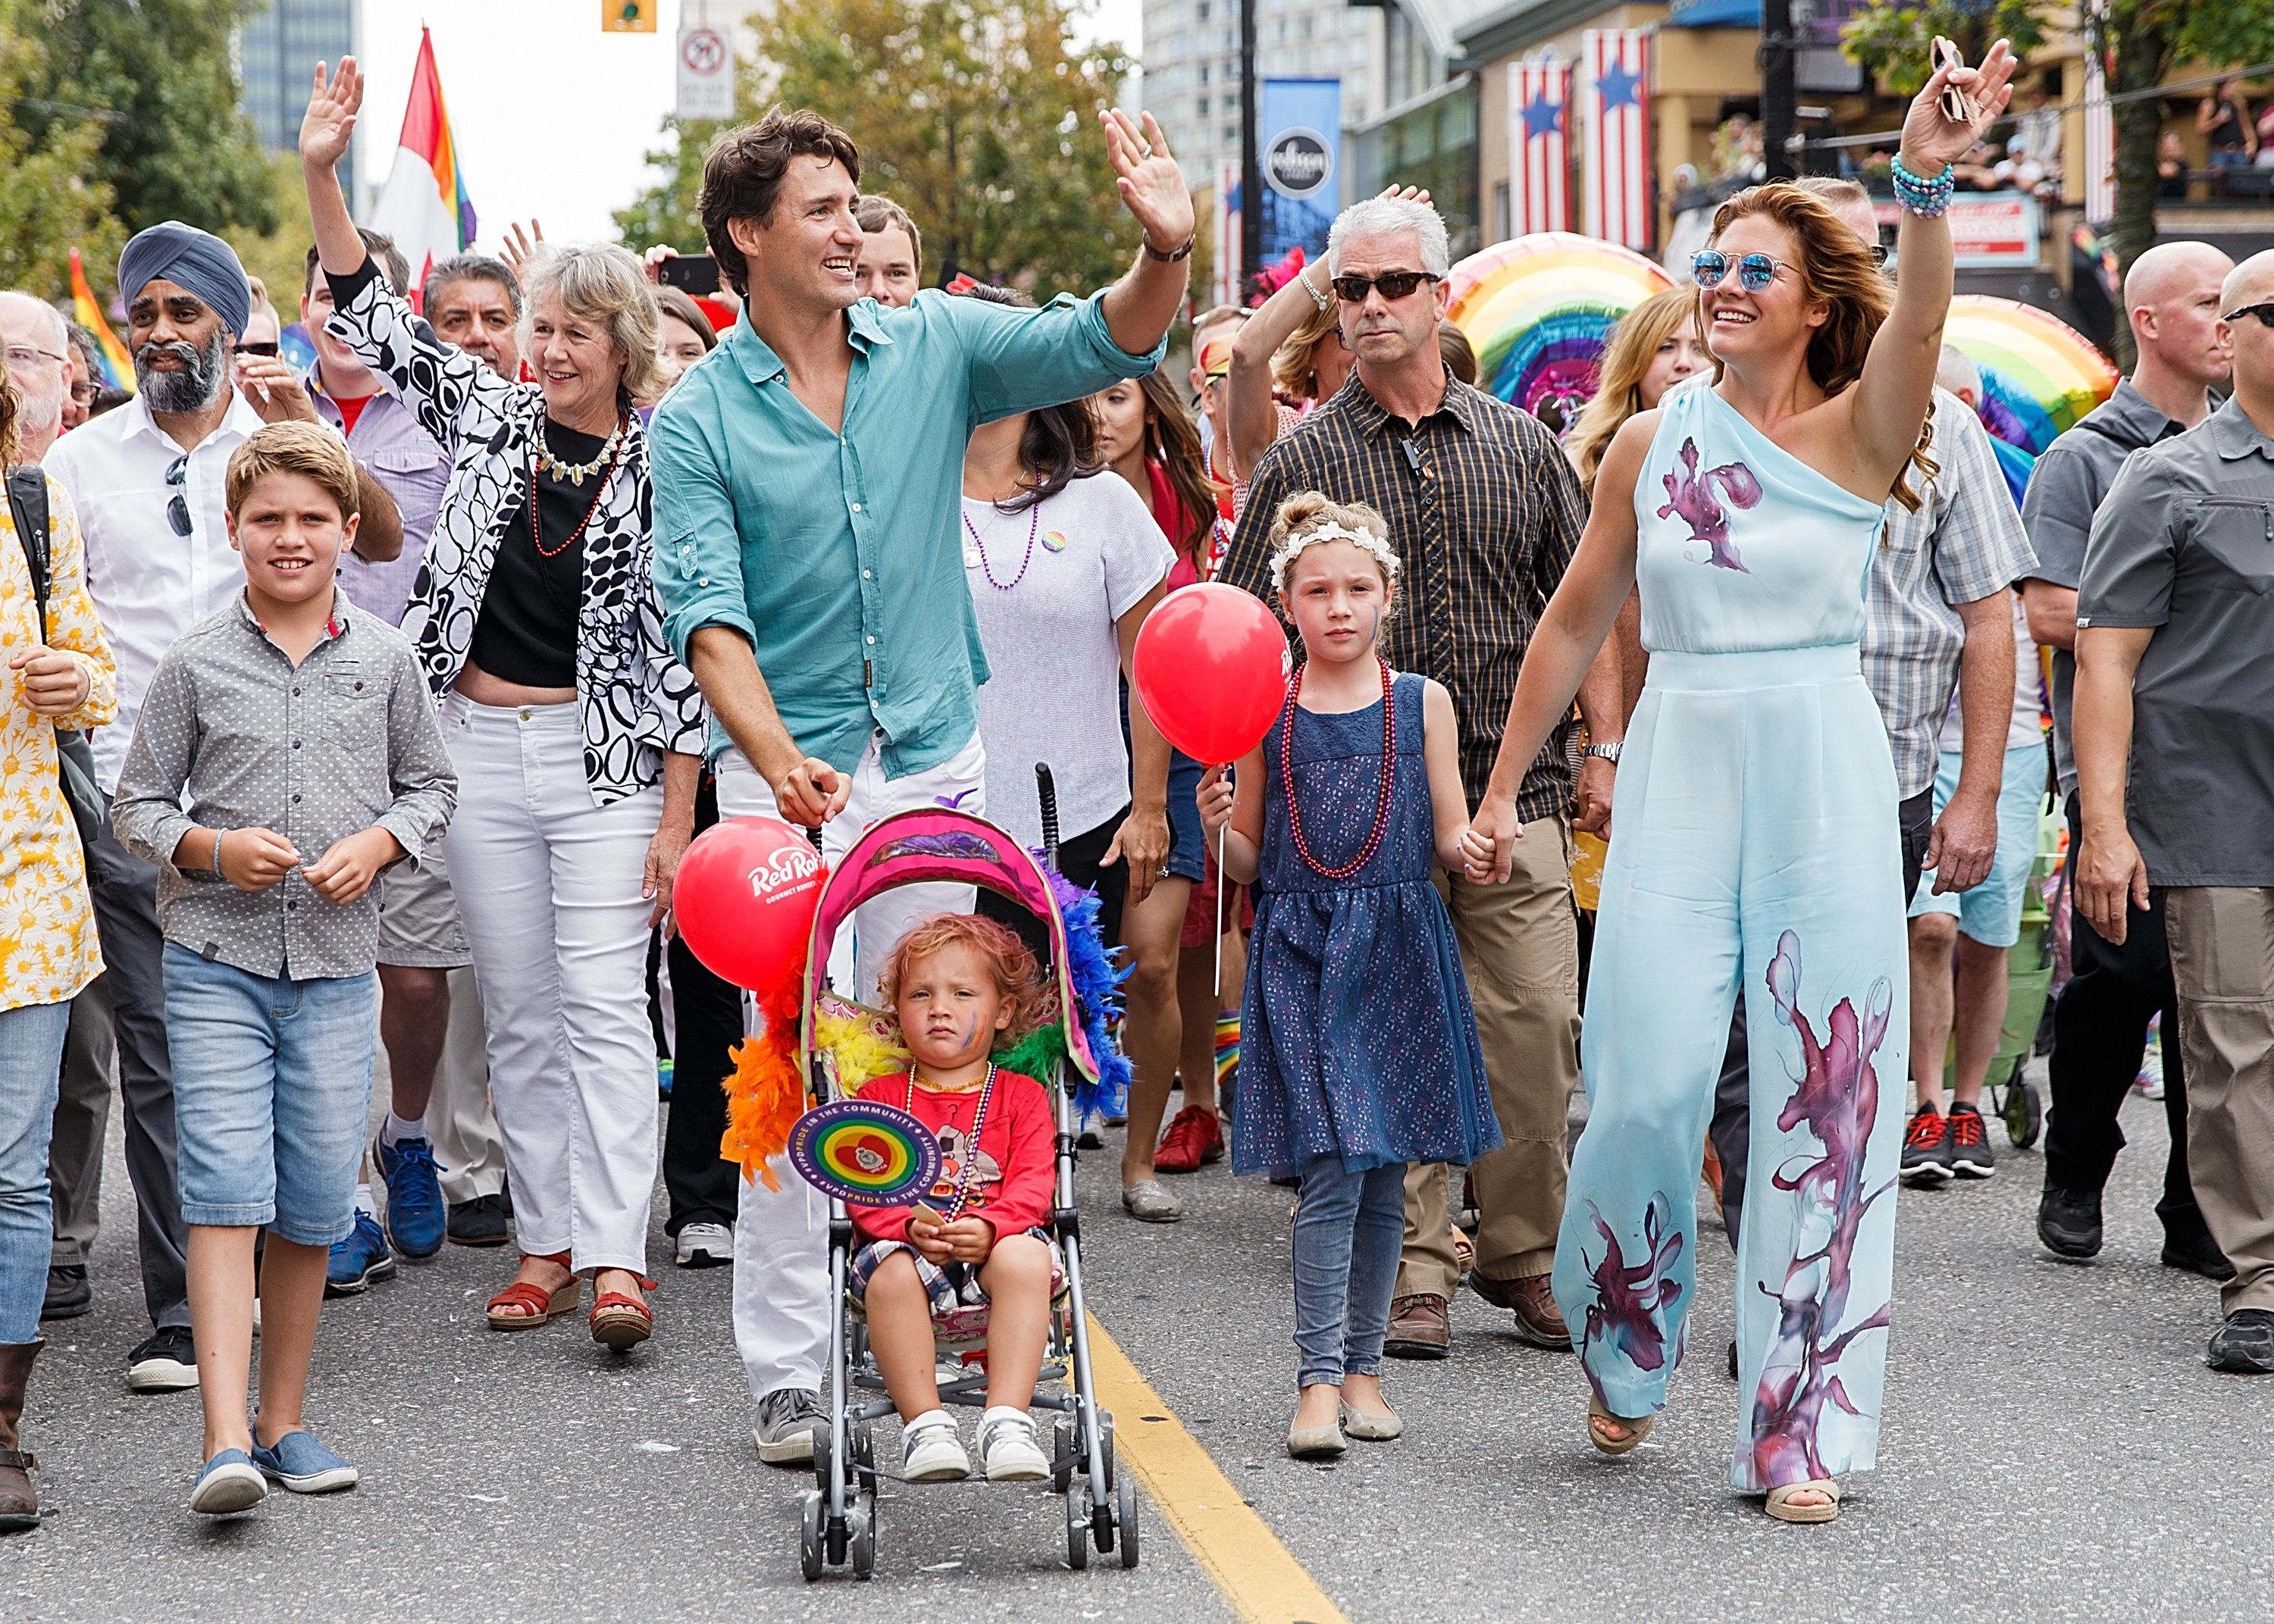 Canadian Prime Minister Justin Trudeau at the 2016 Vancouver Pride Parade with his wife, philanthropist Sophie Grégoir